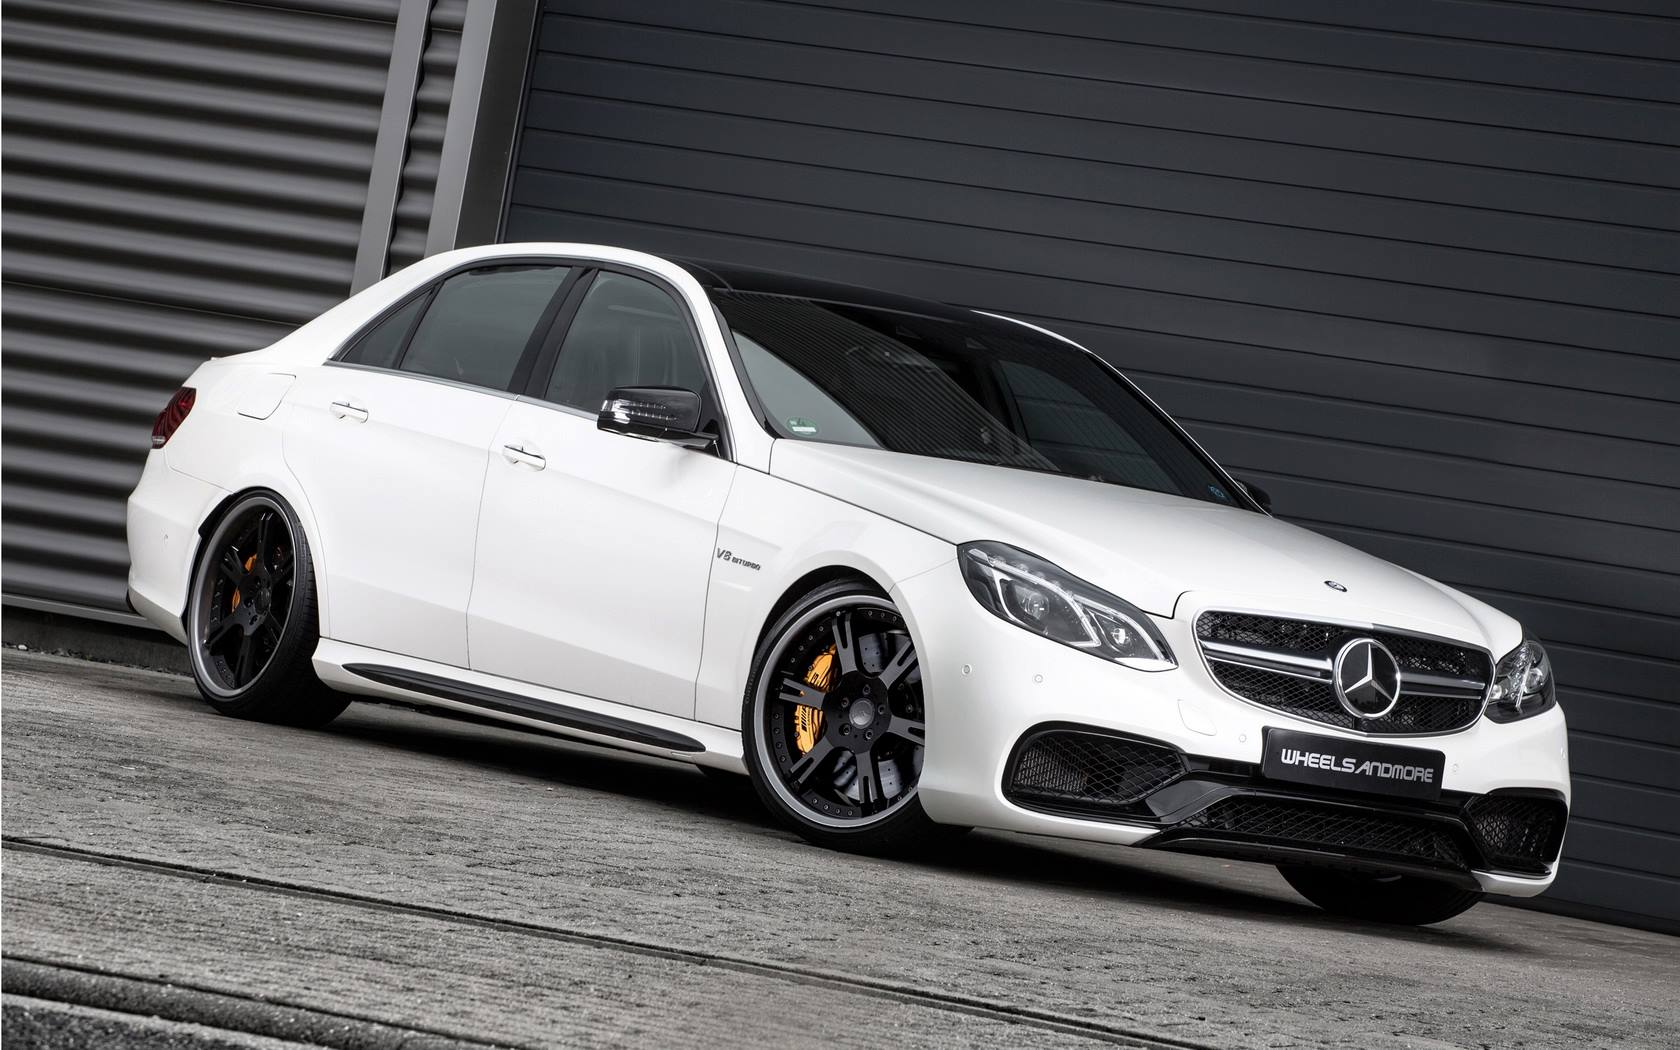 e63 amg s model by wheelsandmore turns it up to 11 autoevolution. Black Bedroom Furniture Sets. Home Design Ideas